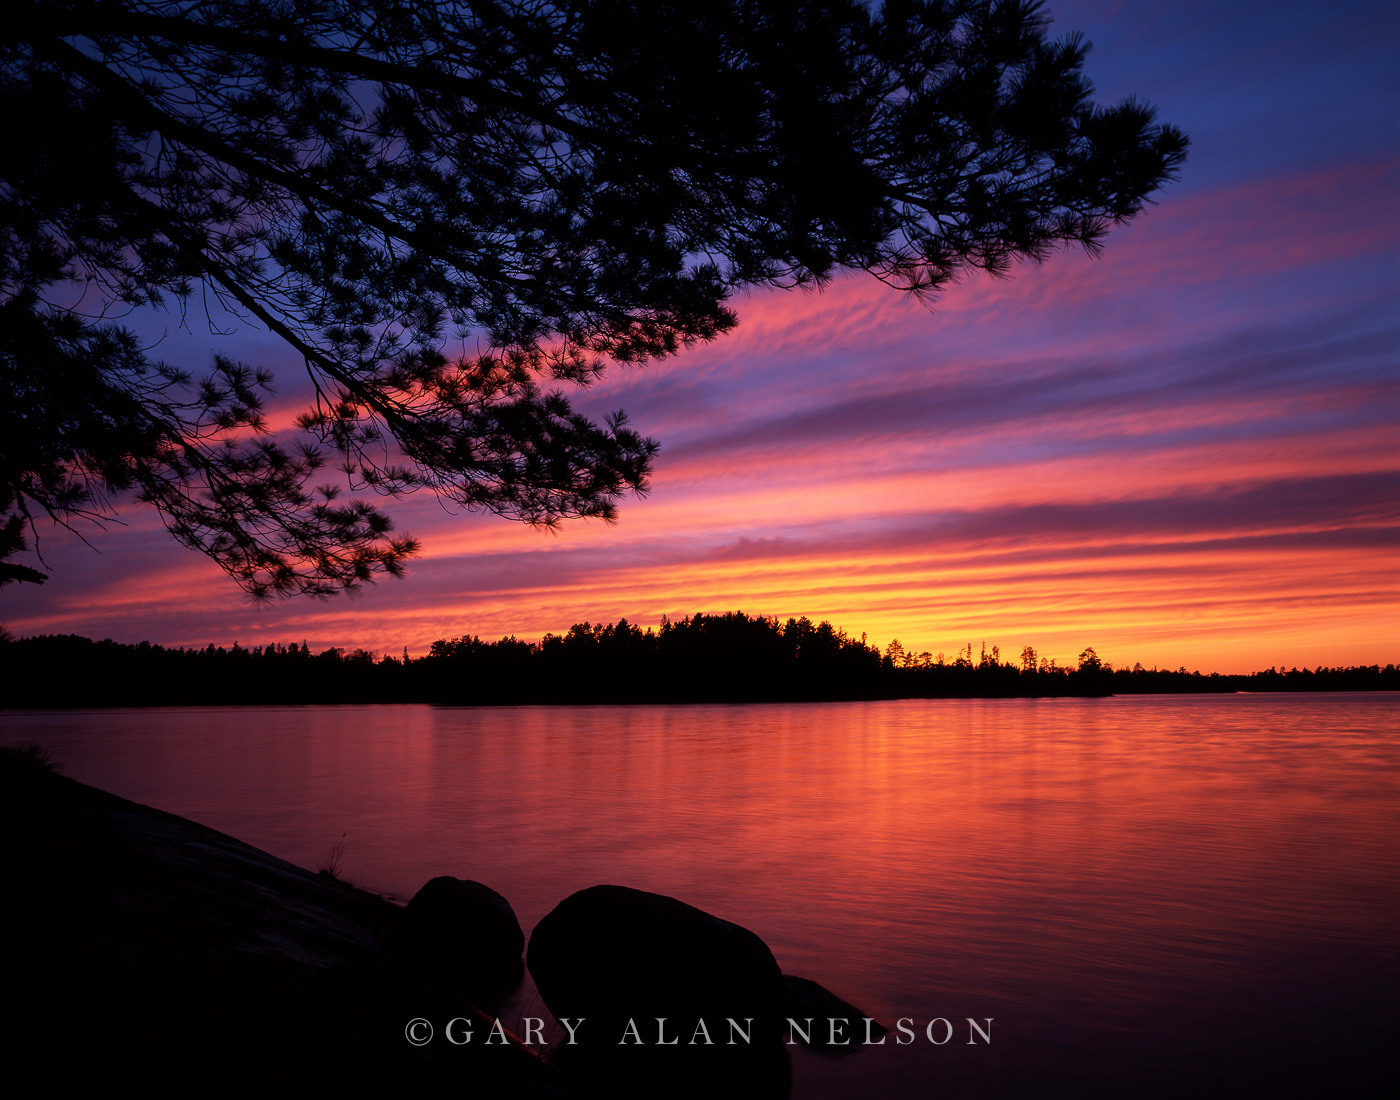 boundary waters canoe area,lake,minnesota, voyageurs national park, photo